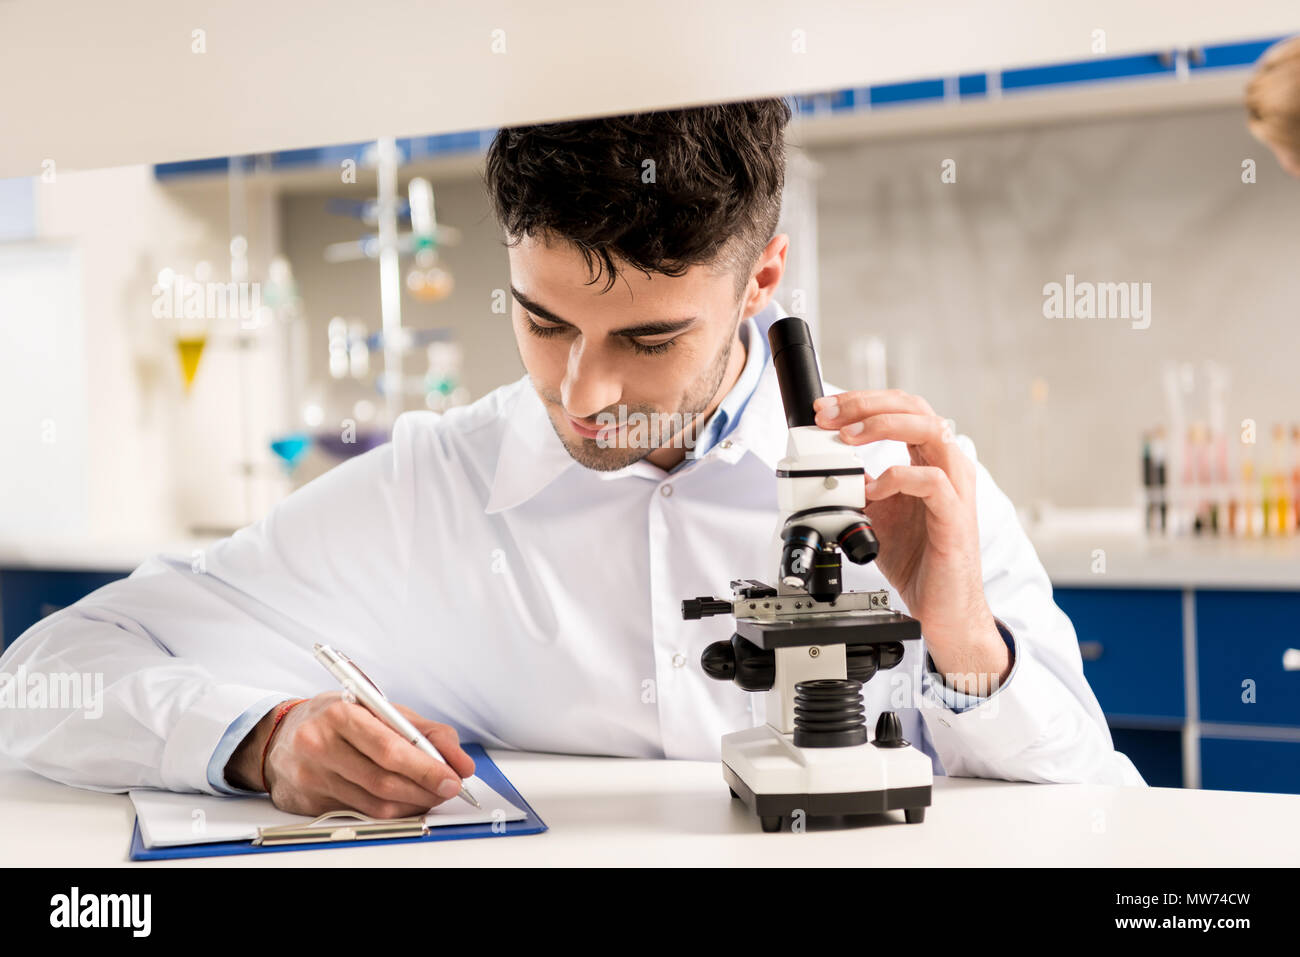 Young lab technician in white coat taking notes and using microscope in laboratory - Stock Image